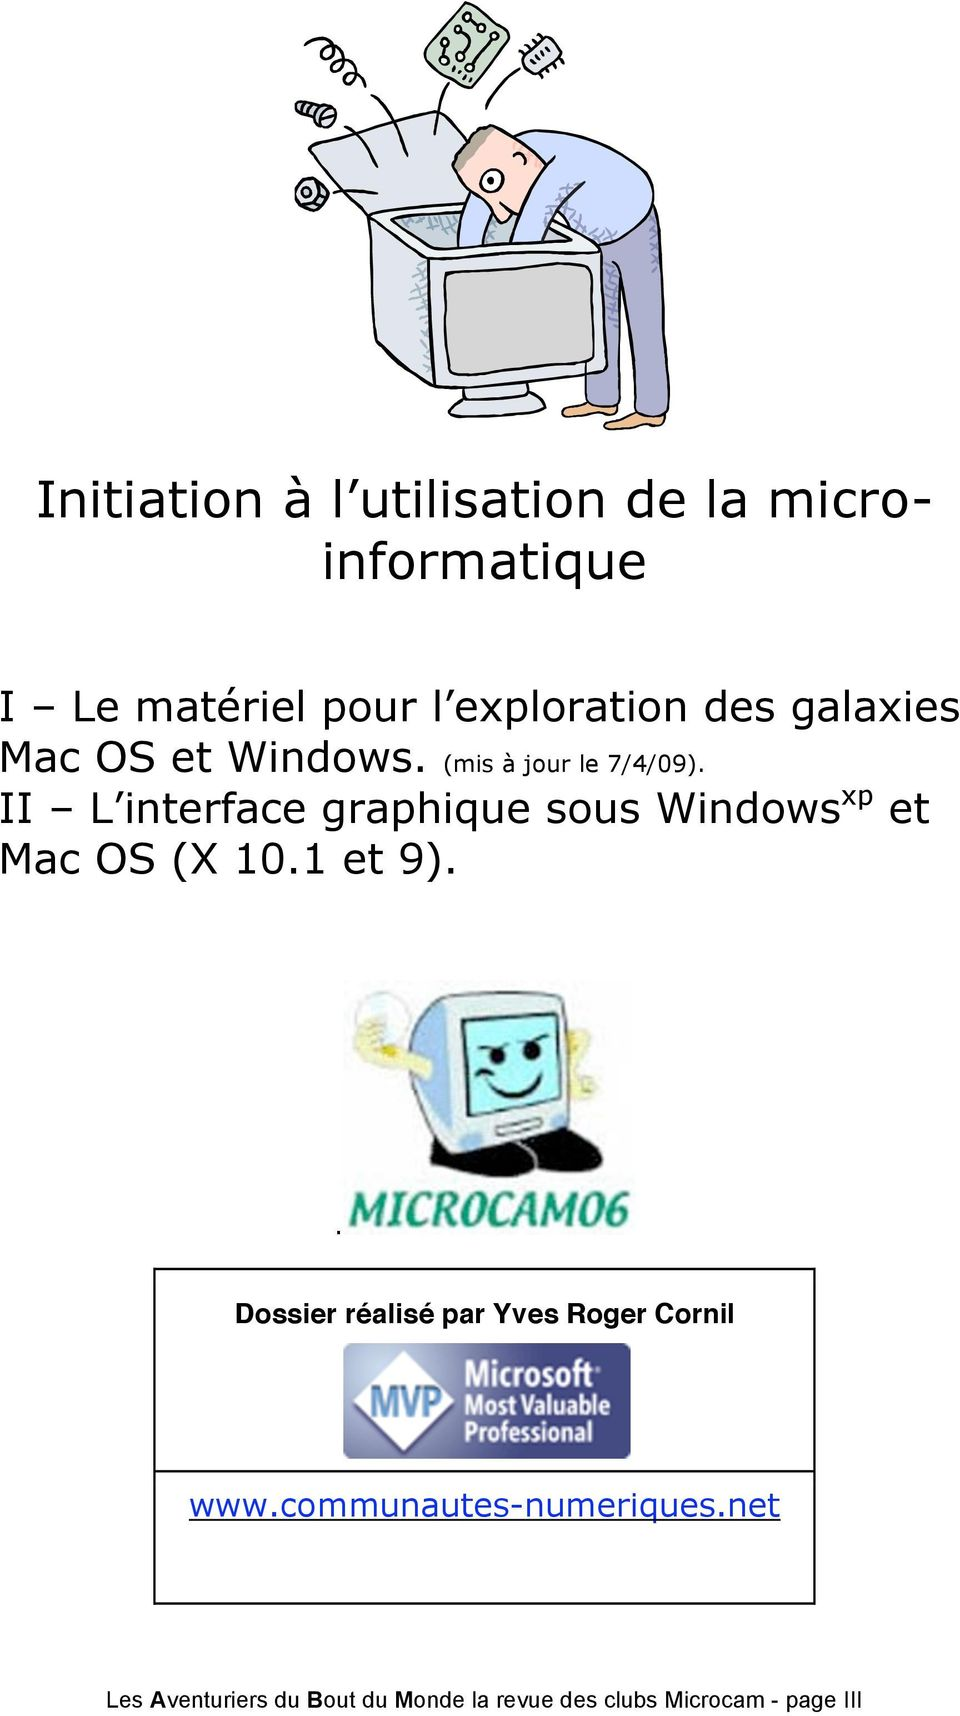 II L interface graphique sous Windows xp et Mac OS (X 10.1 et 9).